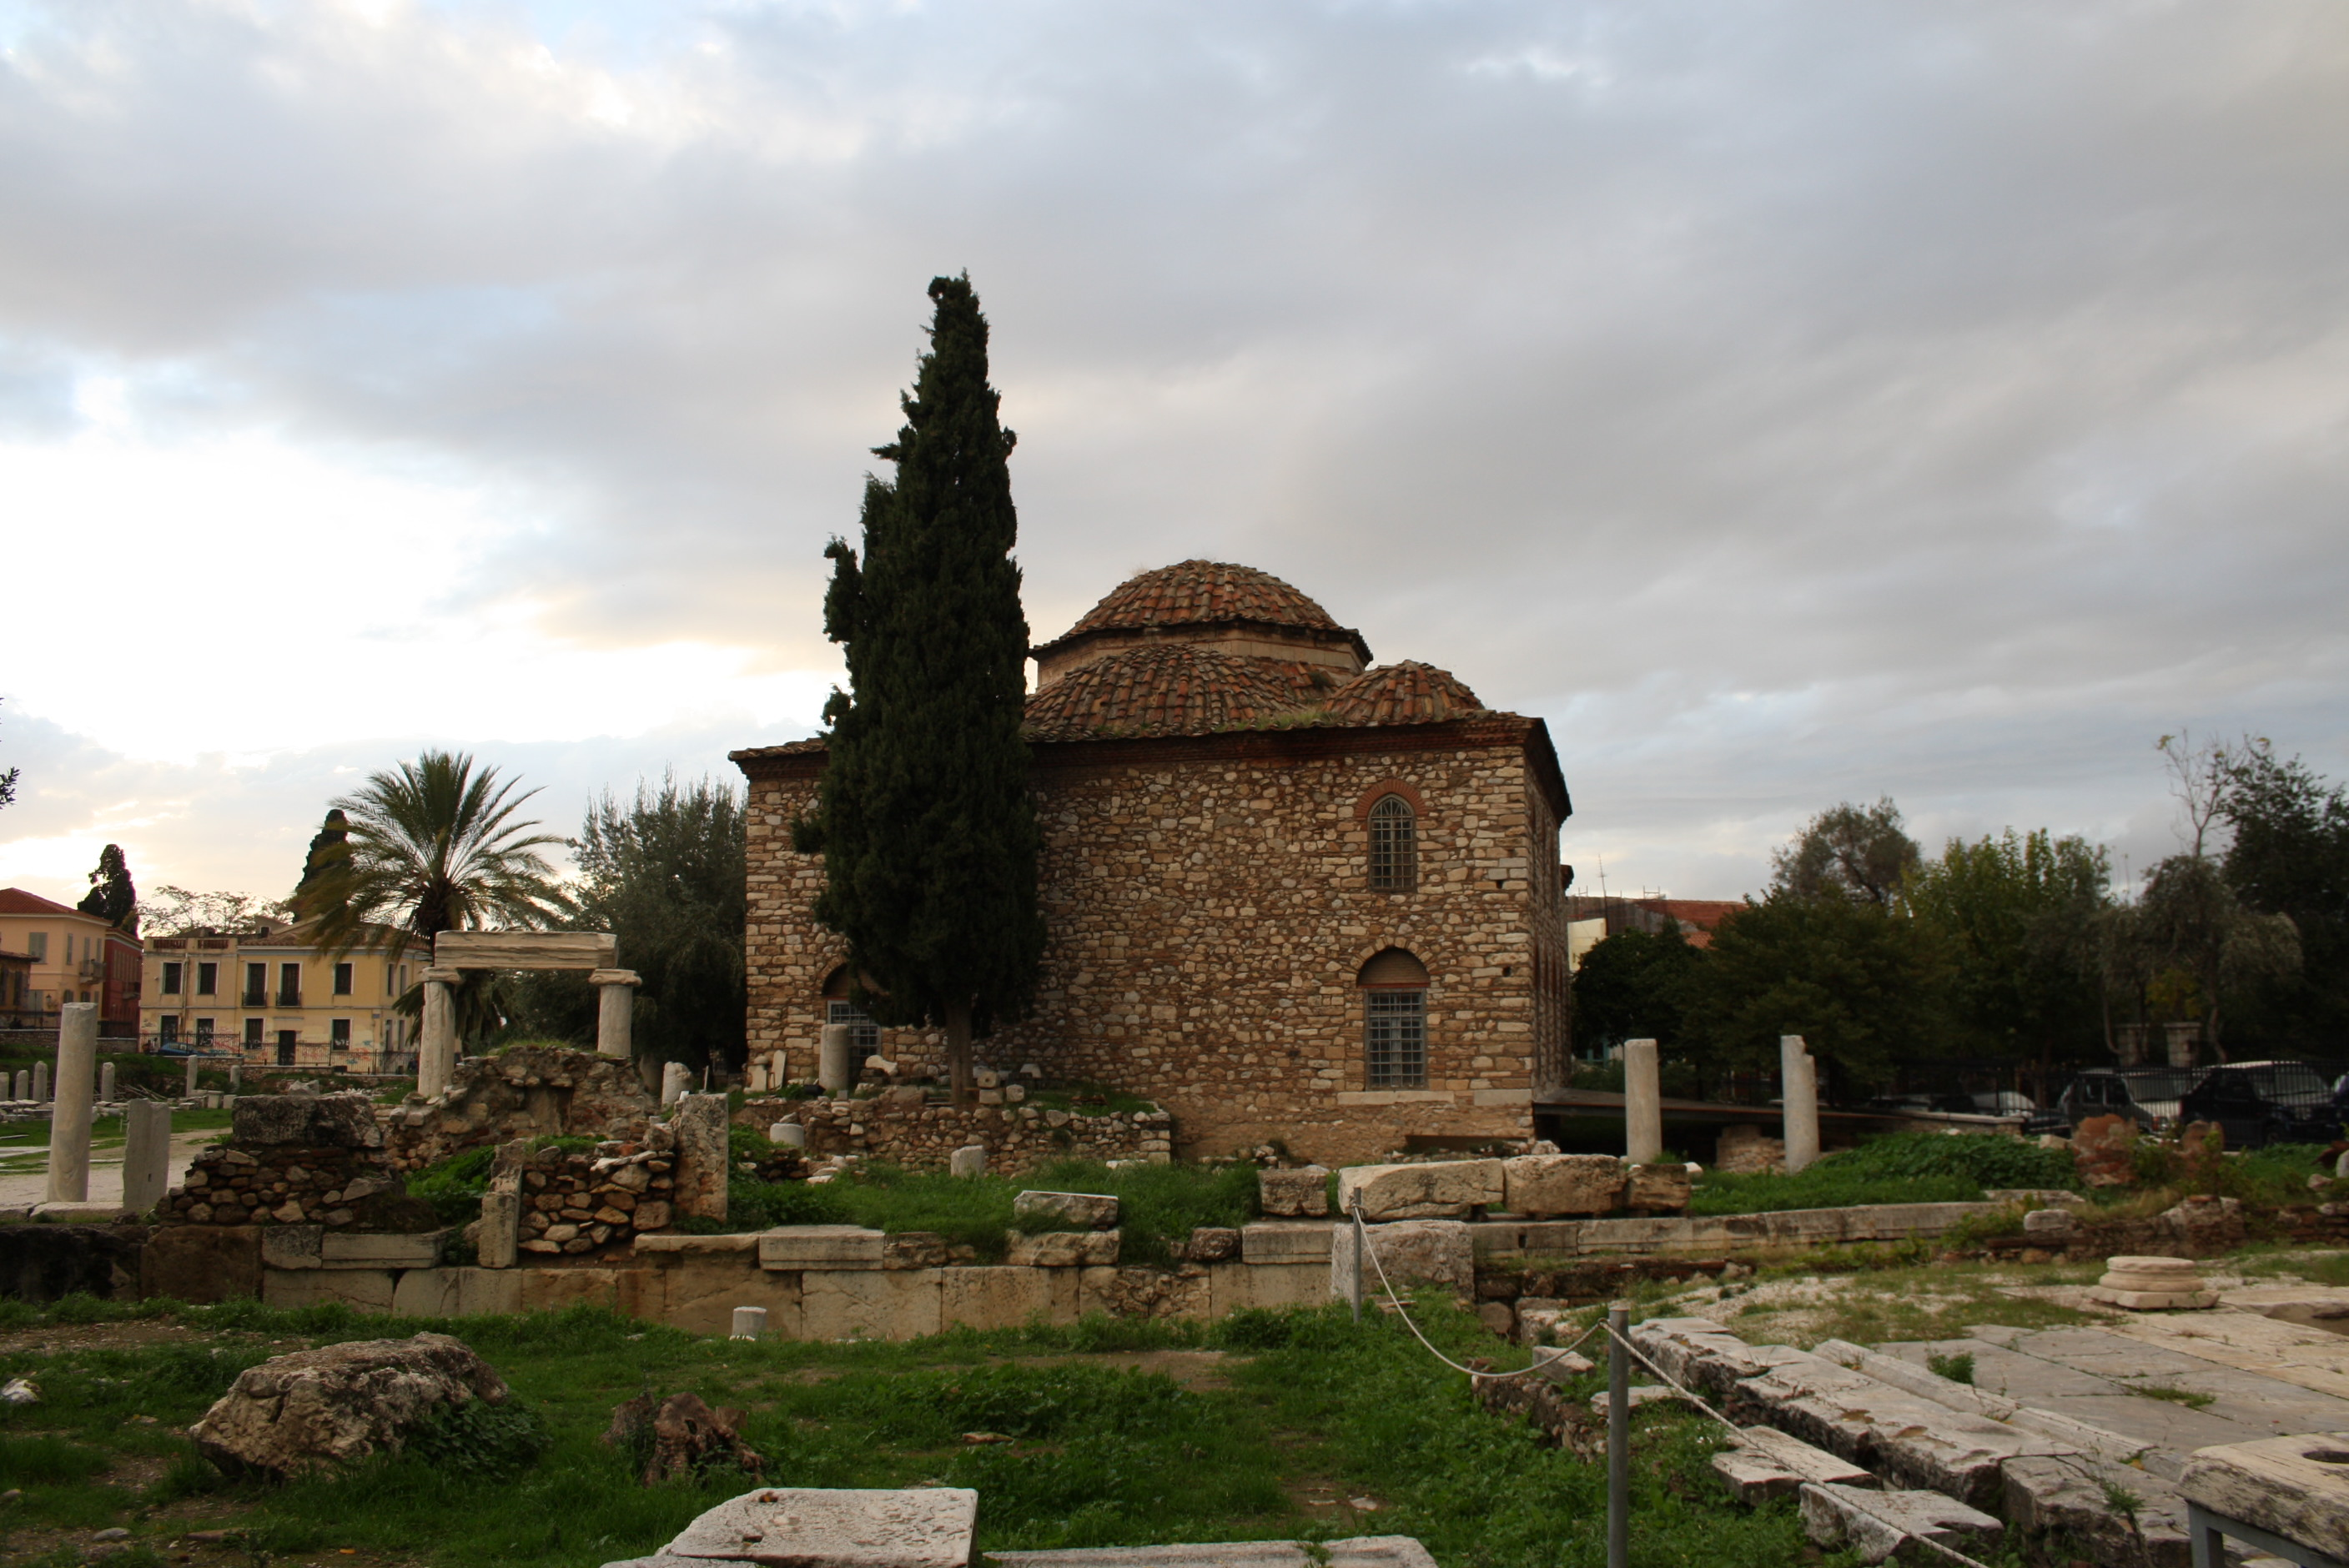 https://i2.wp.com/upload.wikimedia.org/wikipedia/commons/d/dc/3784_-_Athens_-_Fethiye_mosque_-_Photo_by_Giovanni_Dall%27Orto,_Nov_9_2009.jpg